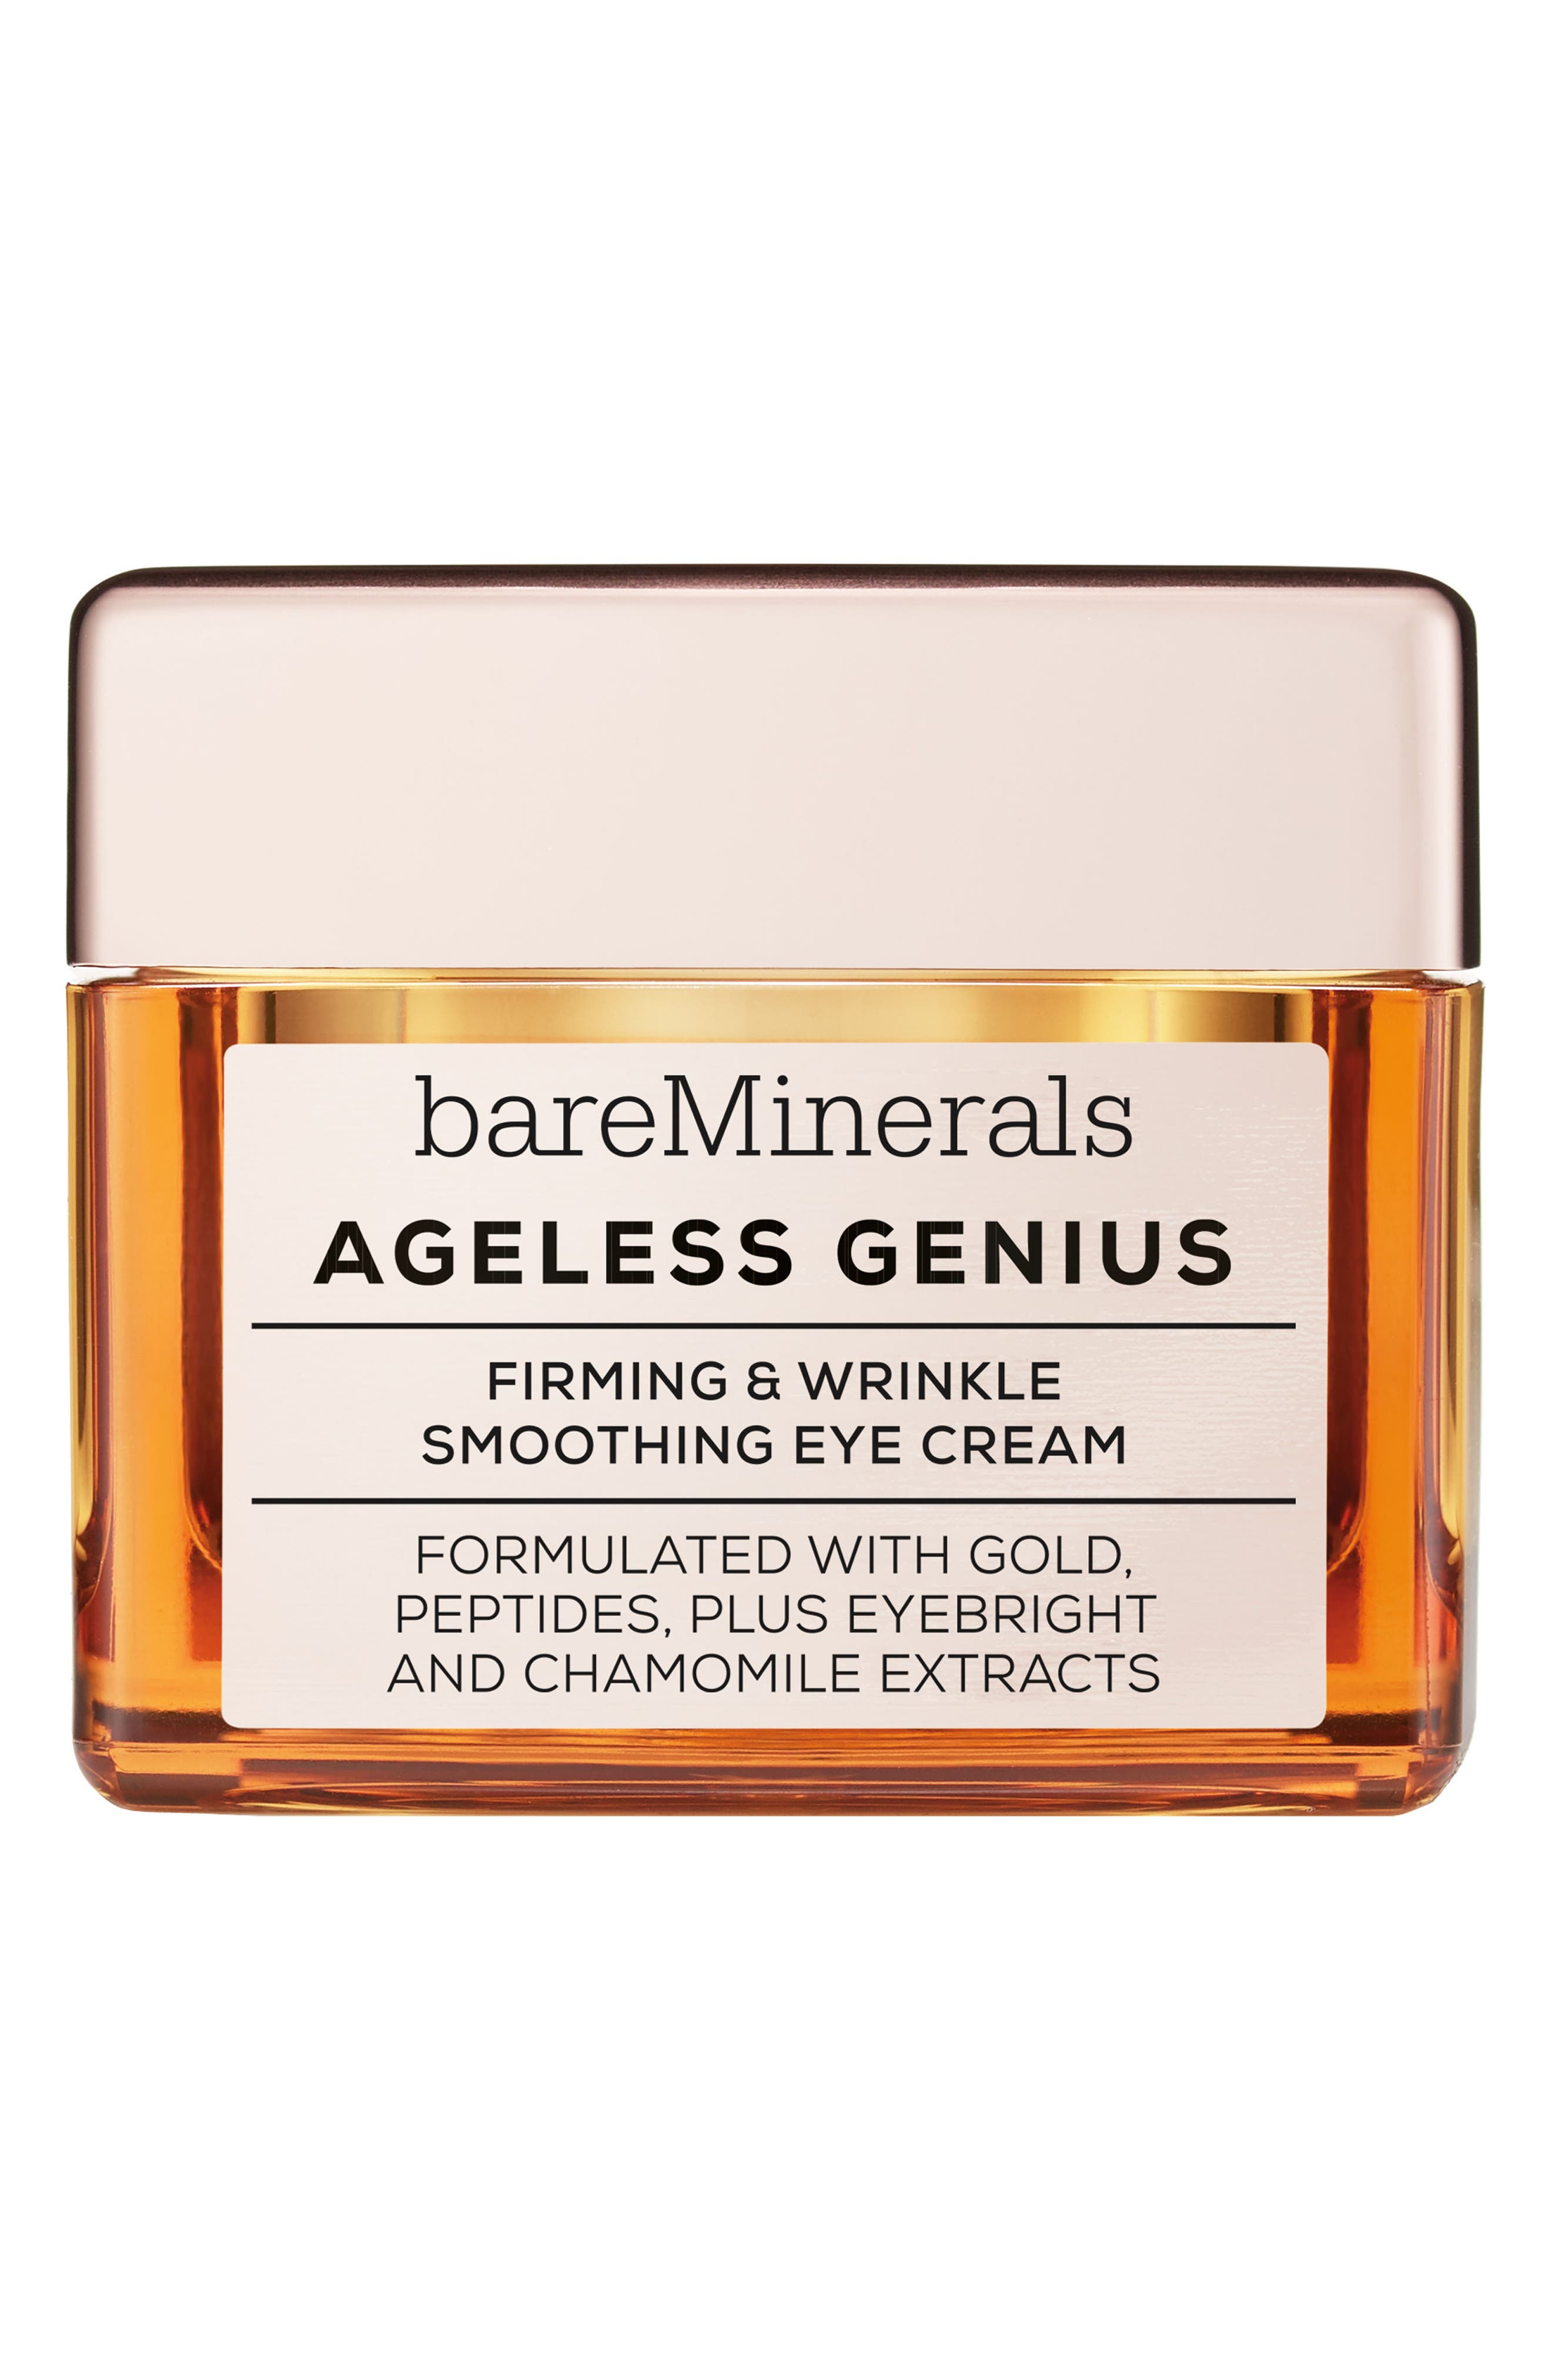 Ageless Genius Firming & Wrinkle Smoothing Eye Cream,                             Main thumbnail 1, color,                             NO COLOR